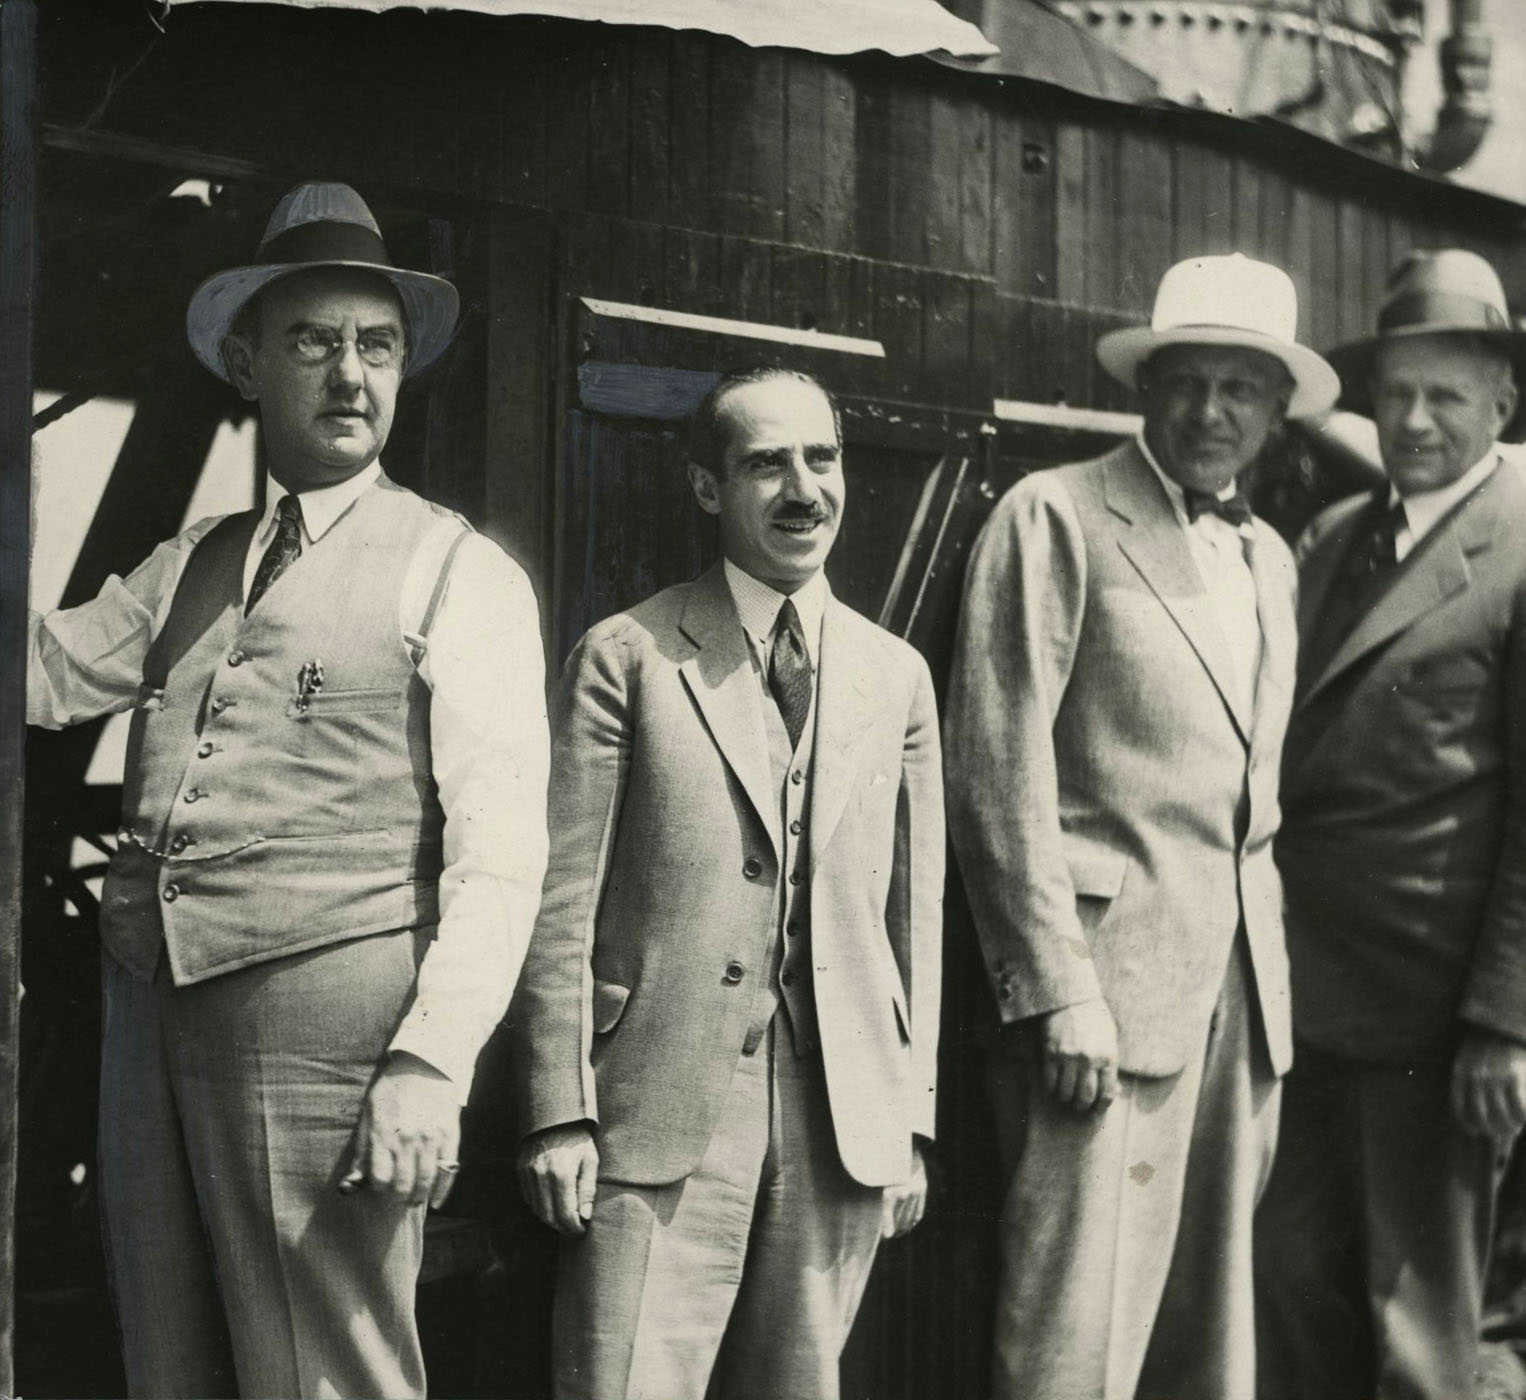 Julius Meier and Aaron Frank, with Hoffman and Dinwiddle contractors building addition to Meier & Frank, July 1930